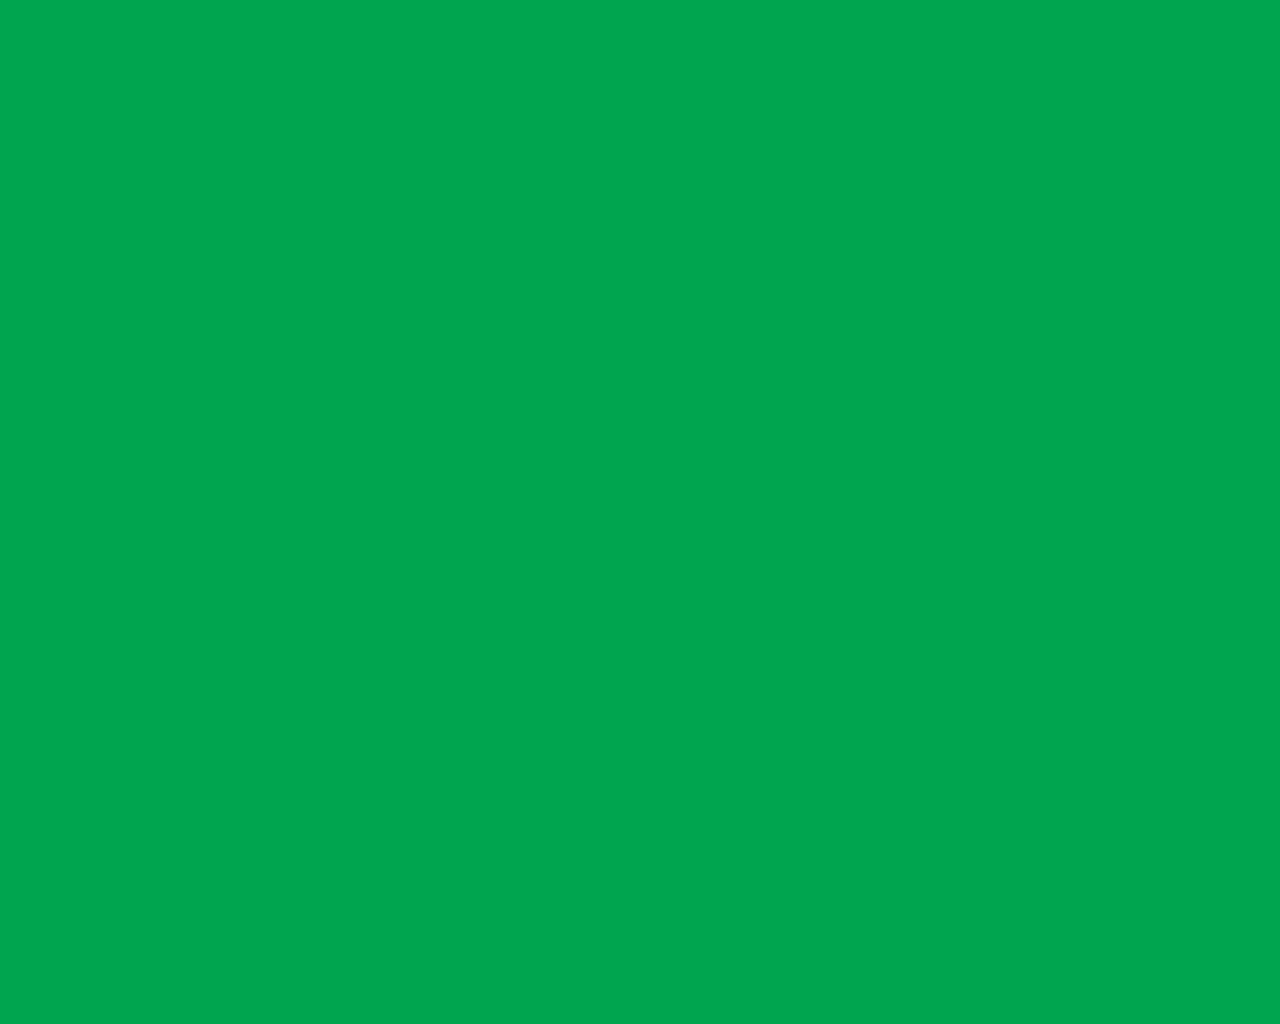 1280x1024 Green Pigment Solid Color Background